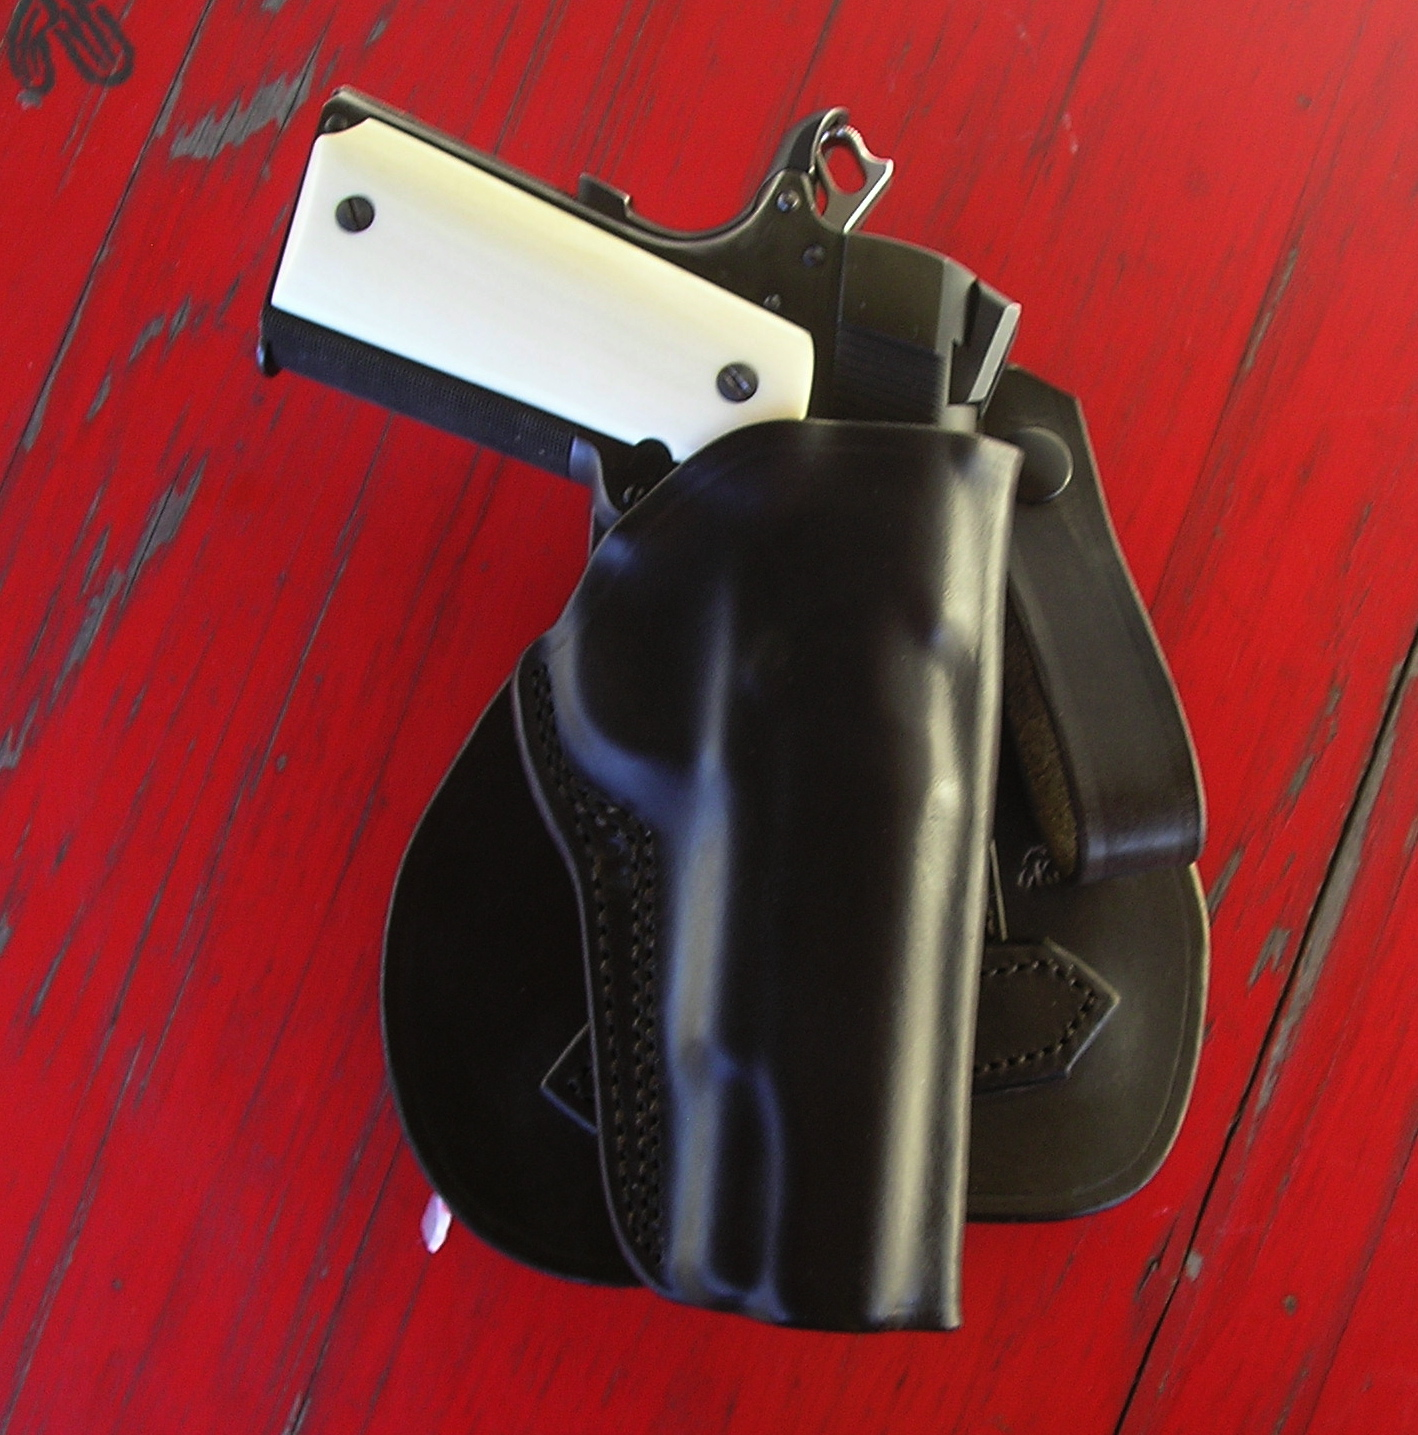 Do any of you carry concealed with an OWB holster?-kramer-msp.jpg